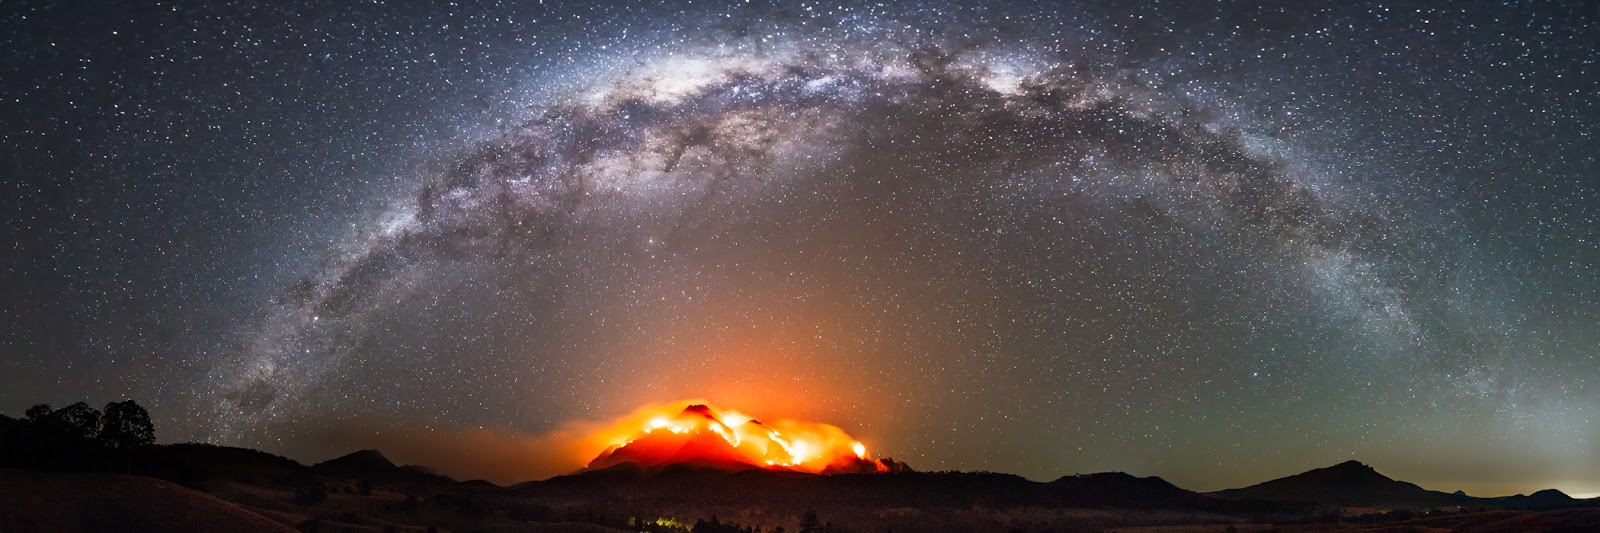 astronomy photography of earth - photo #39